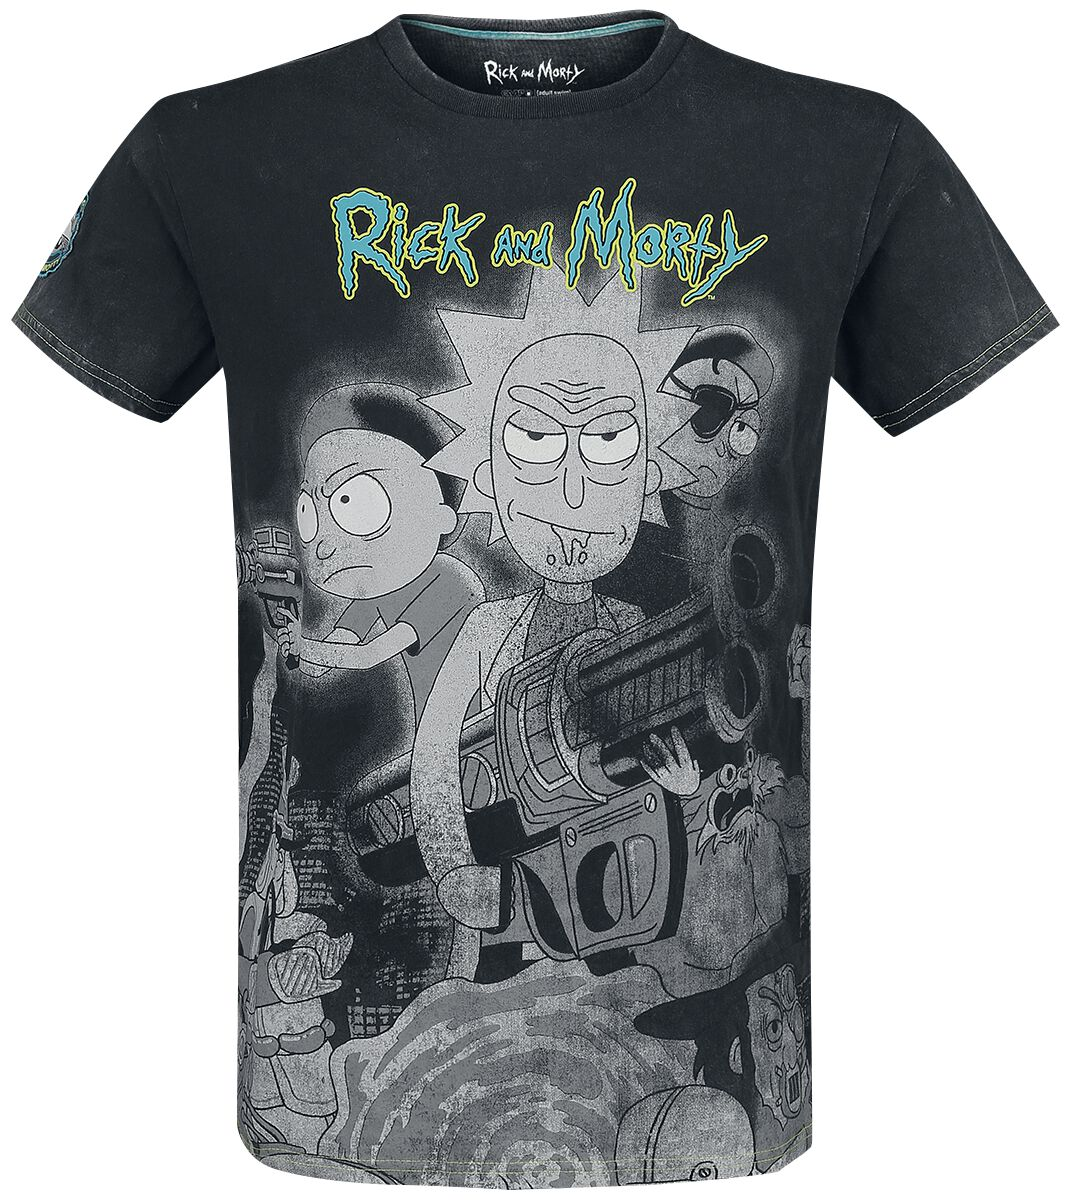 Rick And Morty Rick and Morty Movie powered by EMP